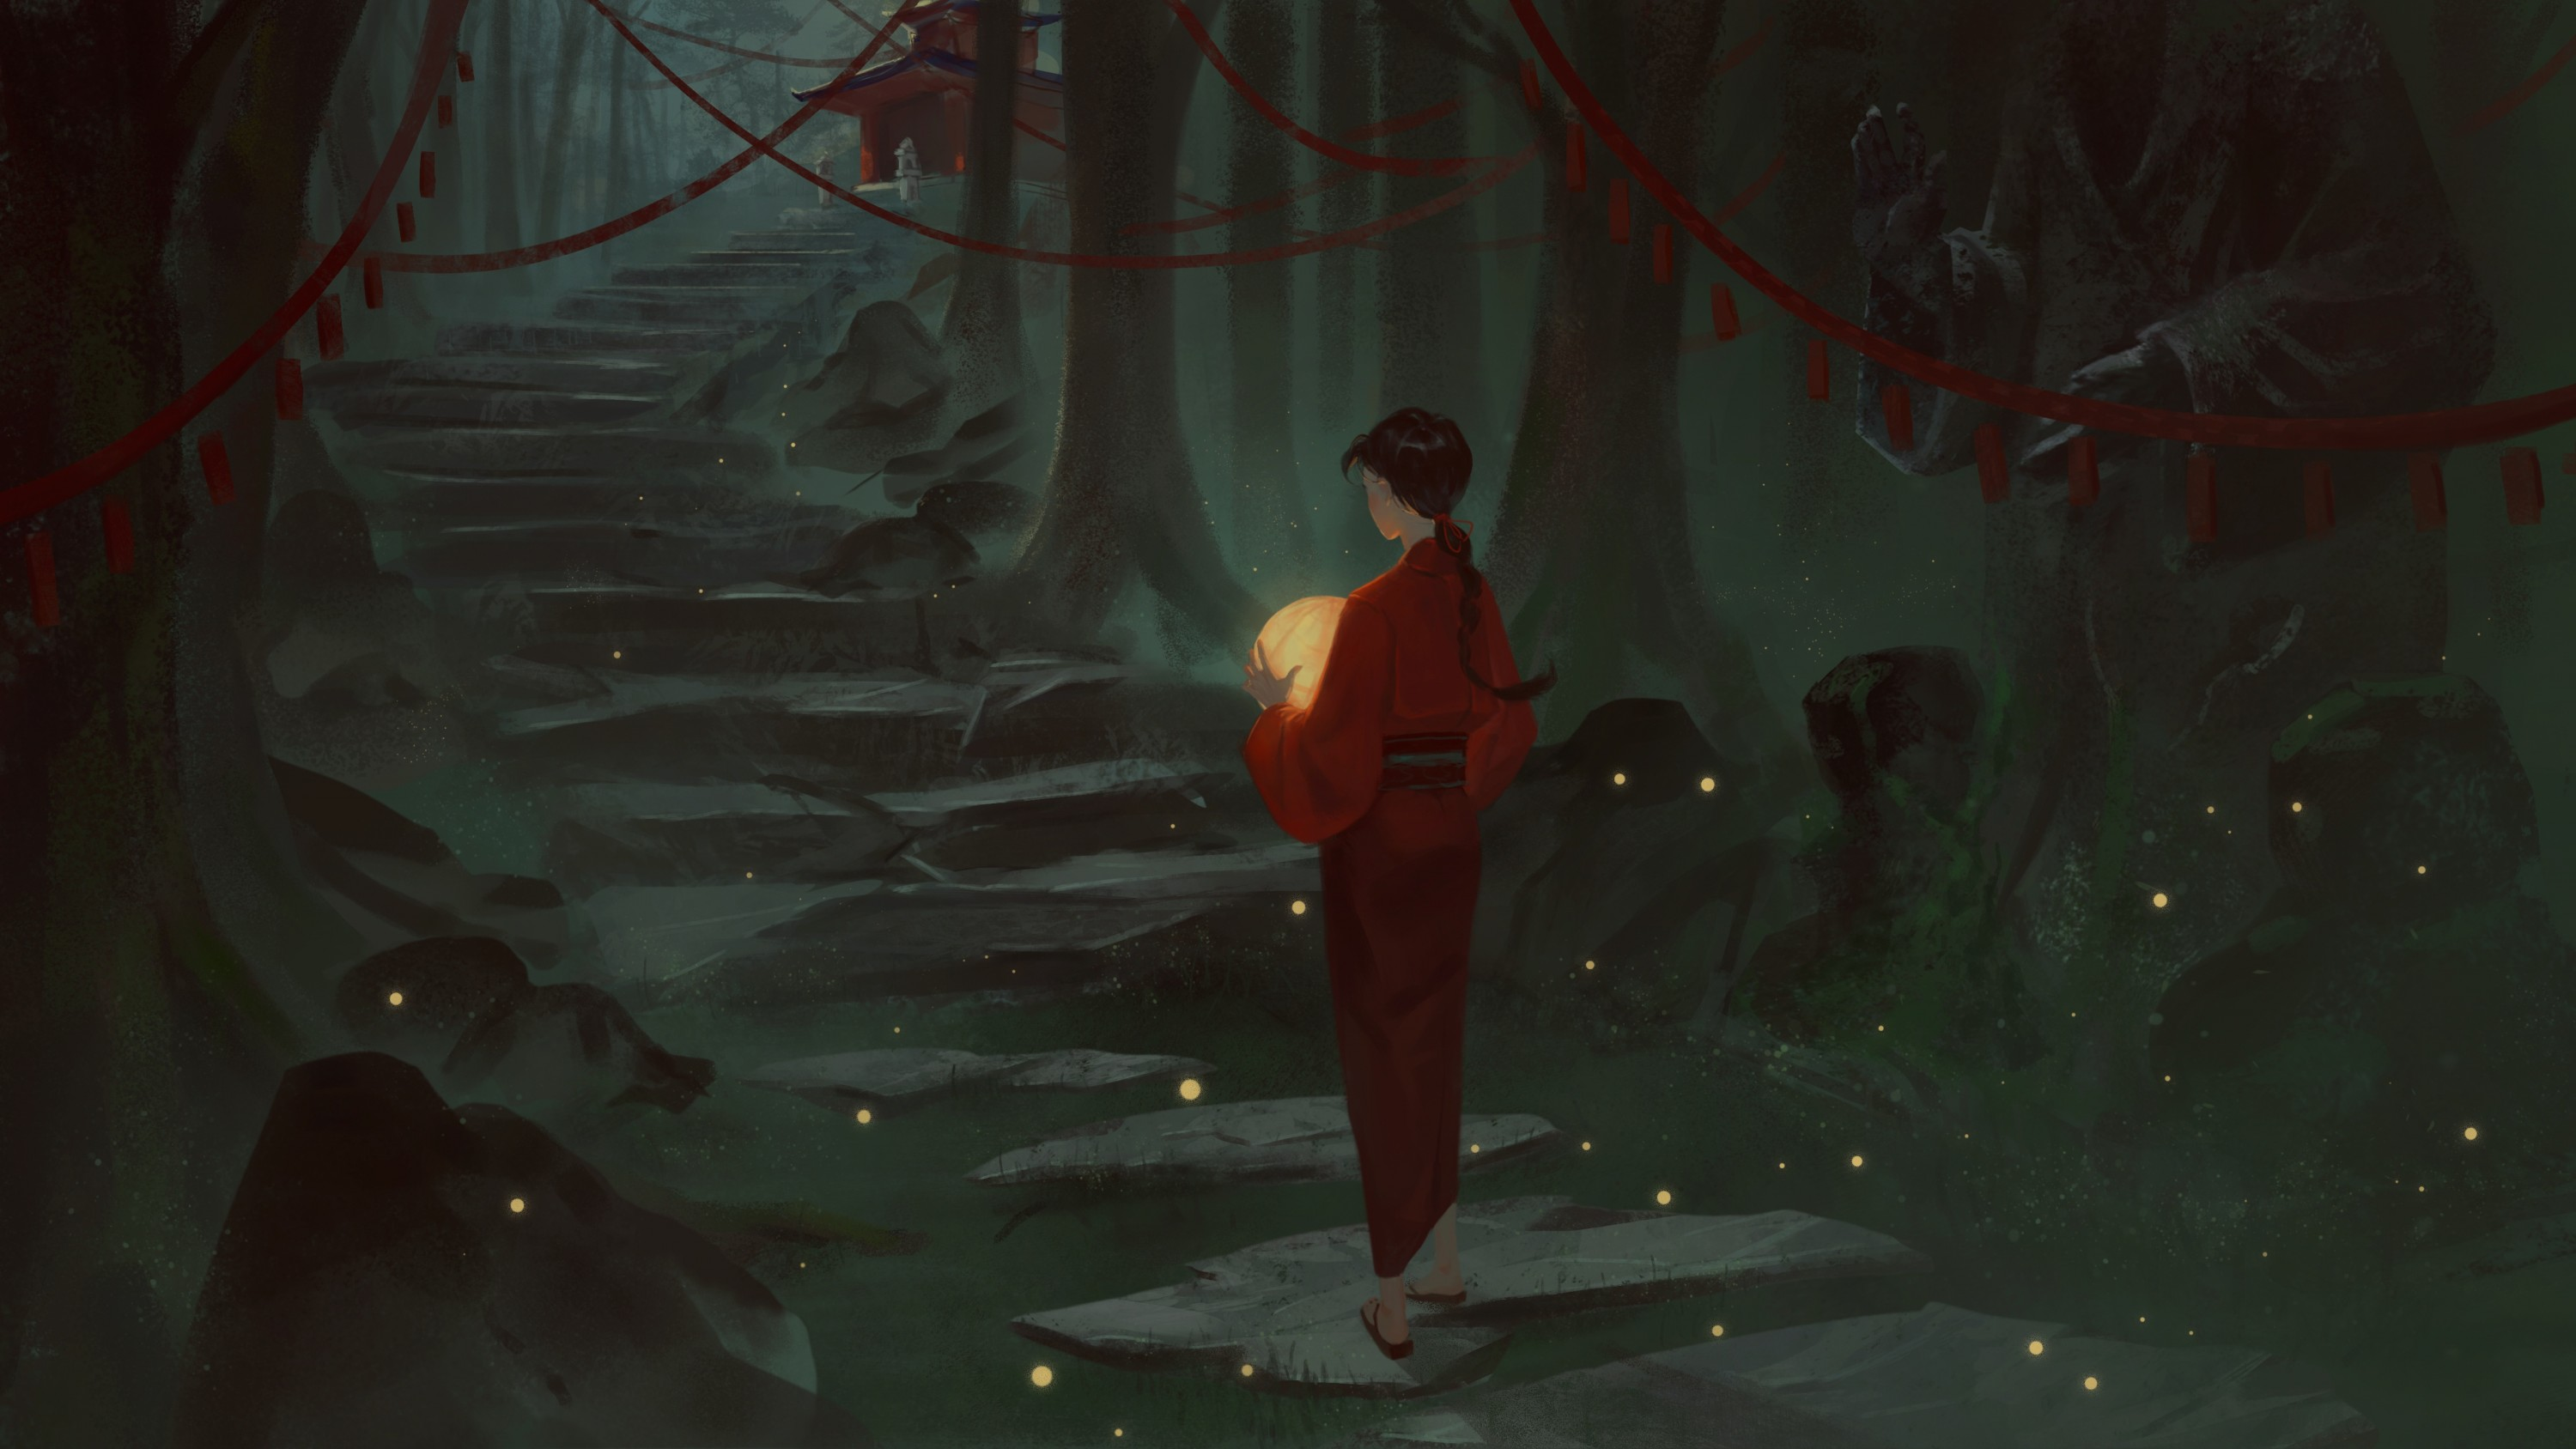 The girl walks towards the temple among the woods while holding her lantern.